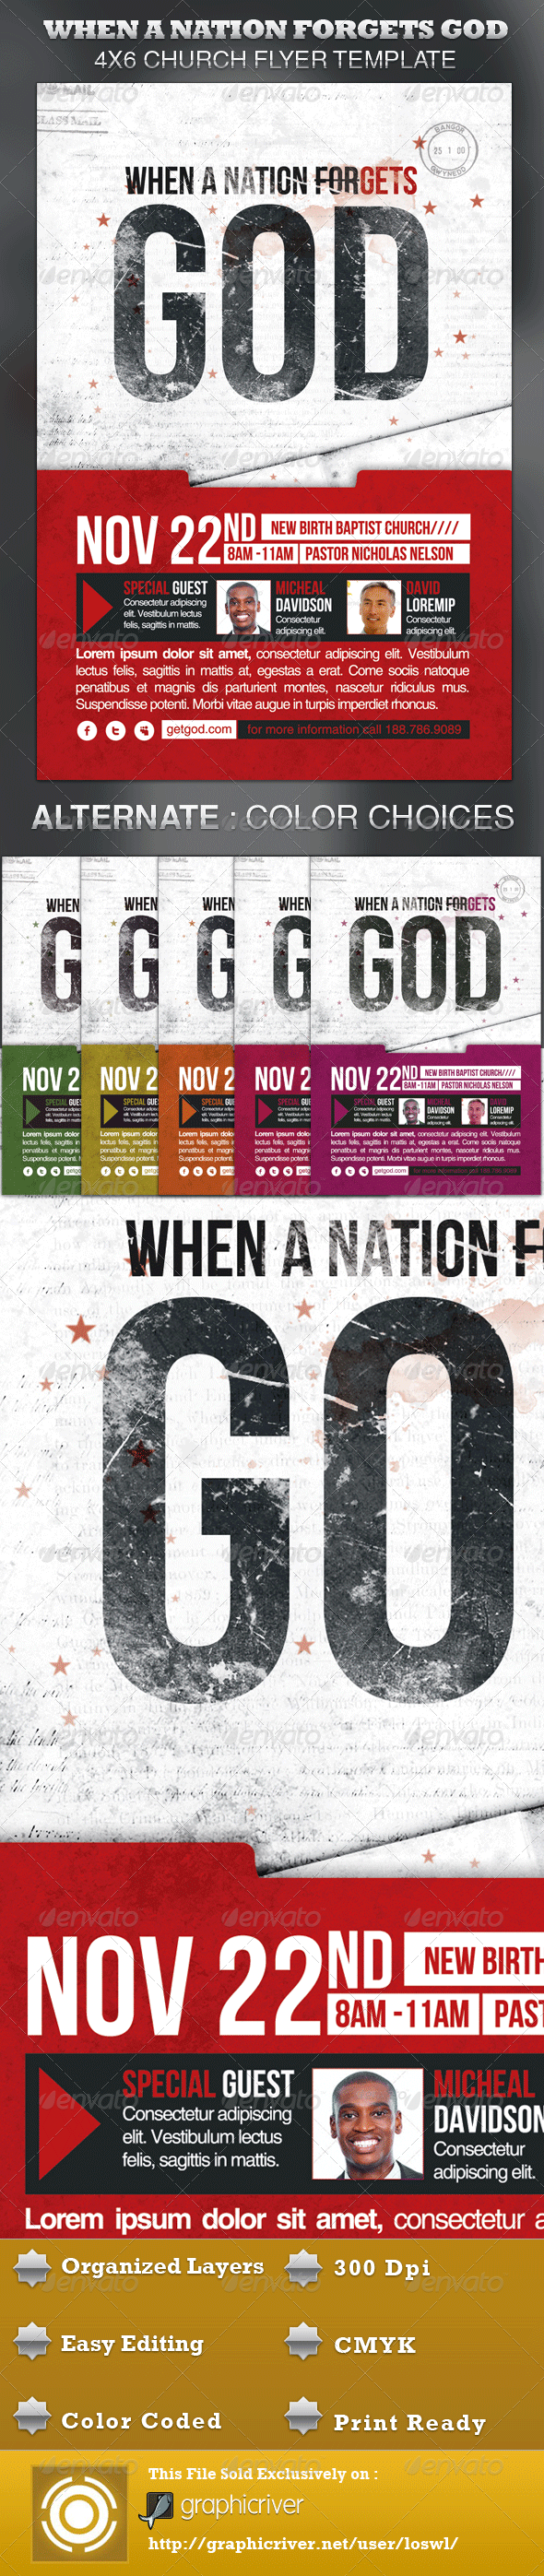 When A Nation Forgets God Church Flyer Template - Church Flyers